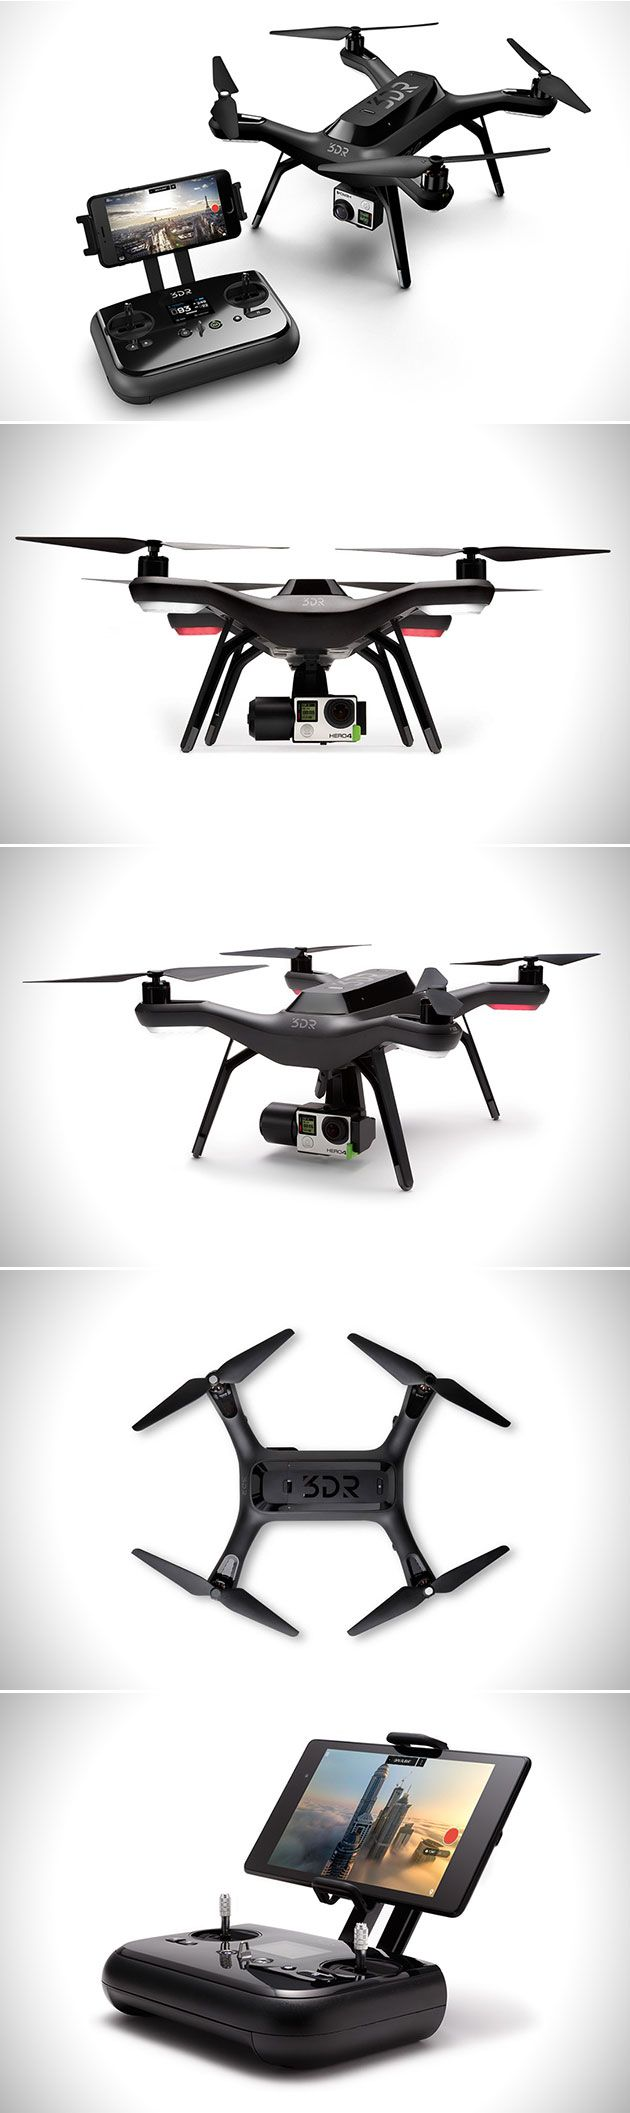 3DR Solo Smart Drone Uses AI to Follow You, Has Gaming-Like Controller ...